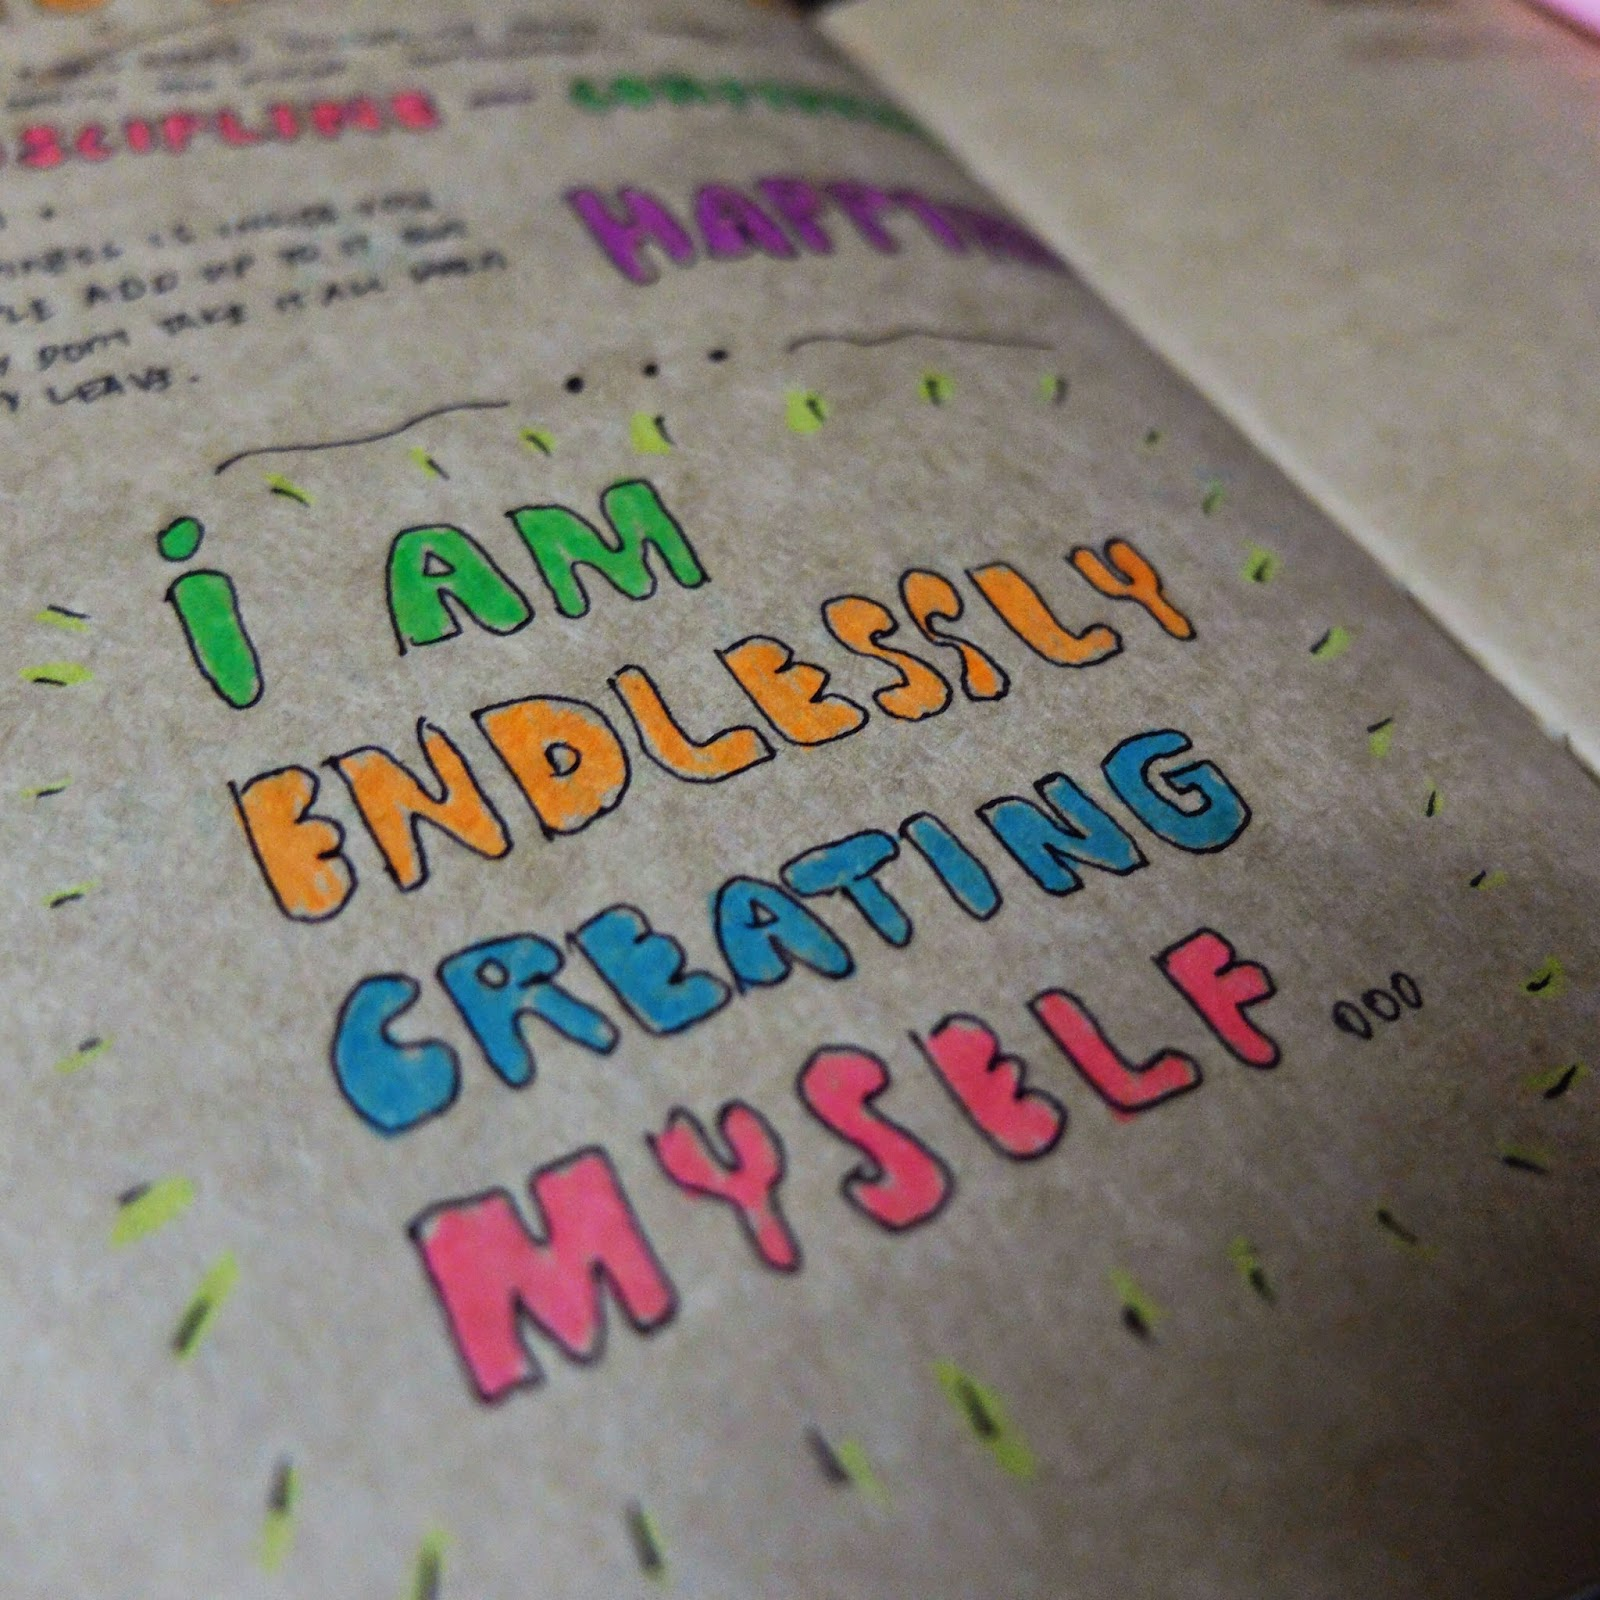 I am endlessly creating myself.